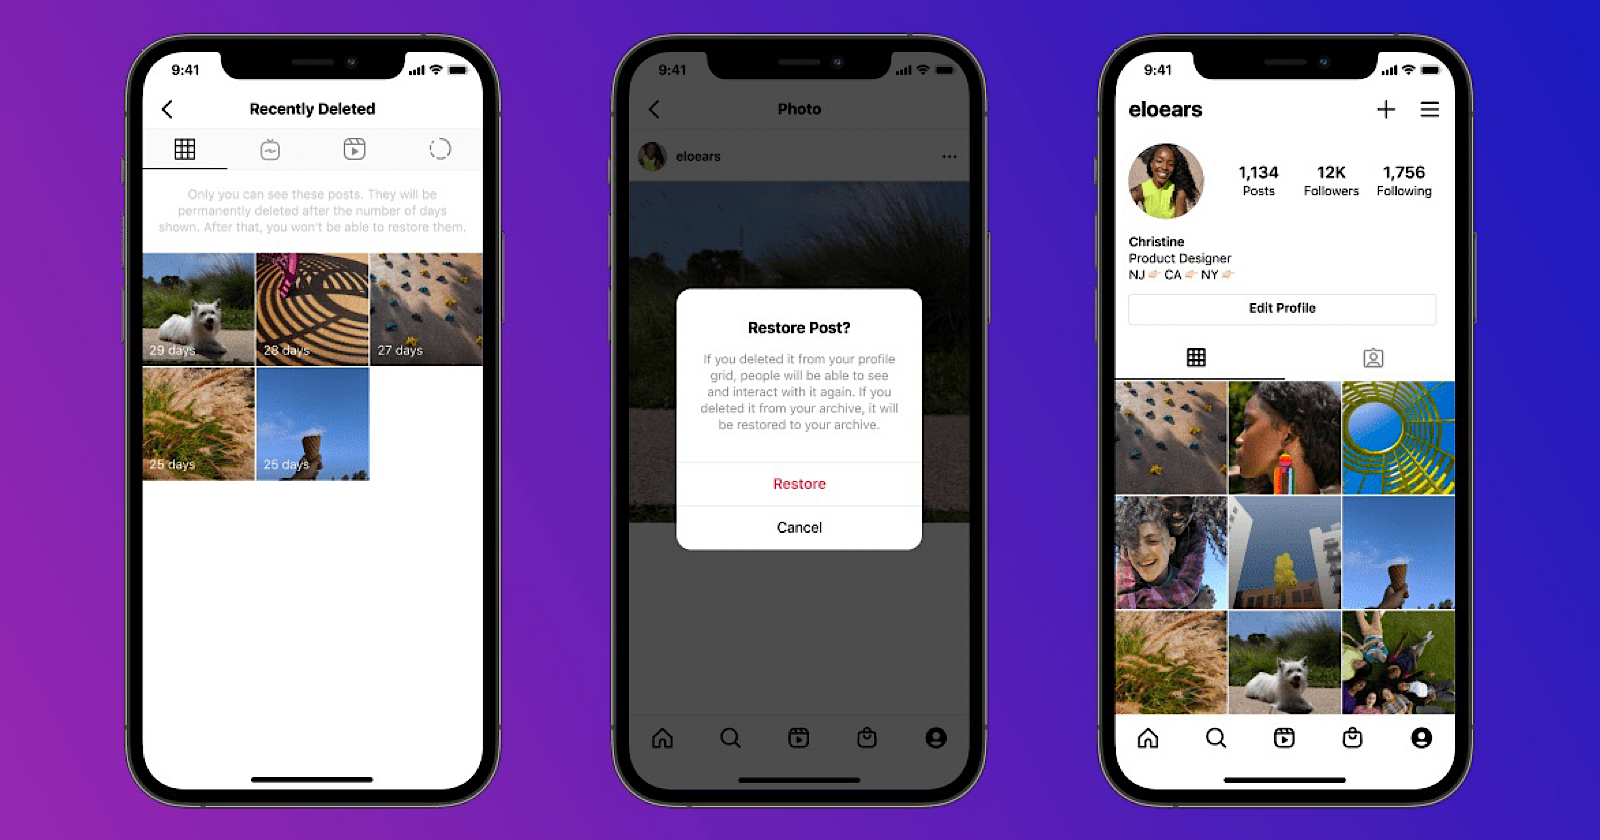 Instagram Adds 'Recently Deleted' Folder For Removed Content - Search Engine Journal